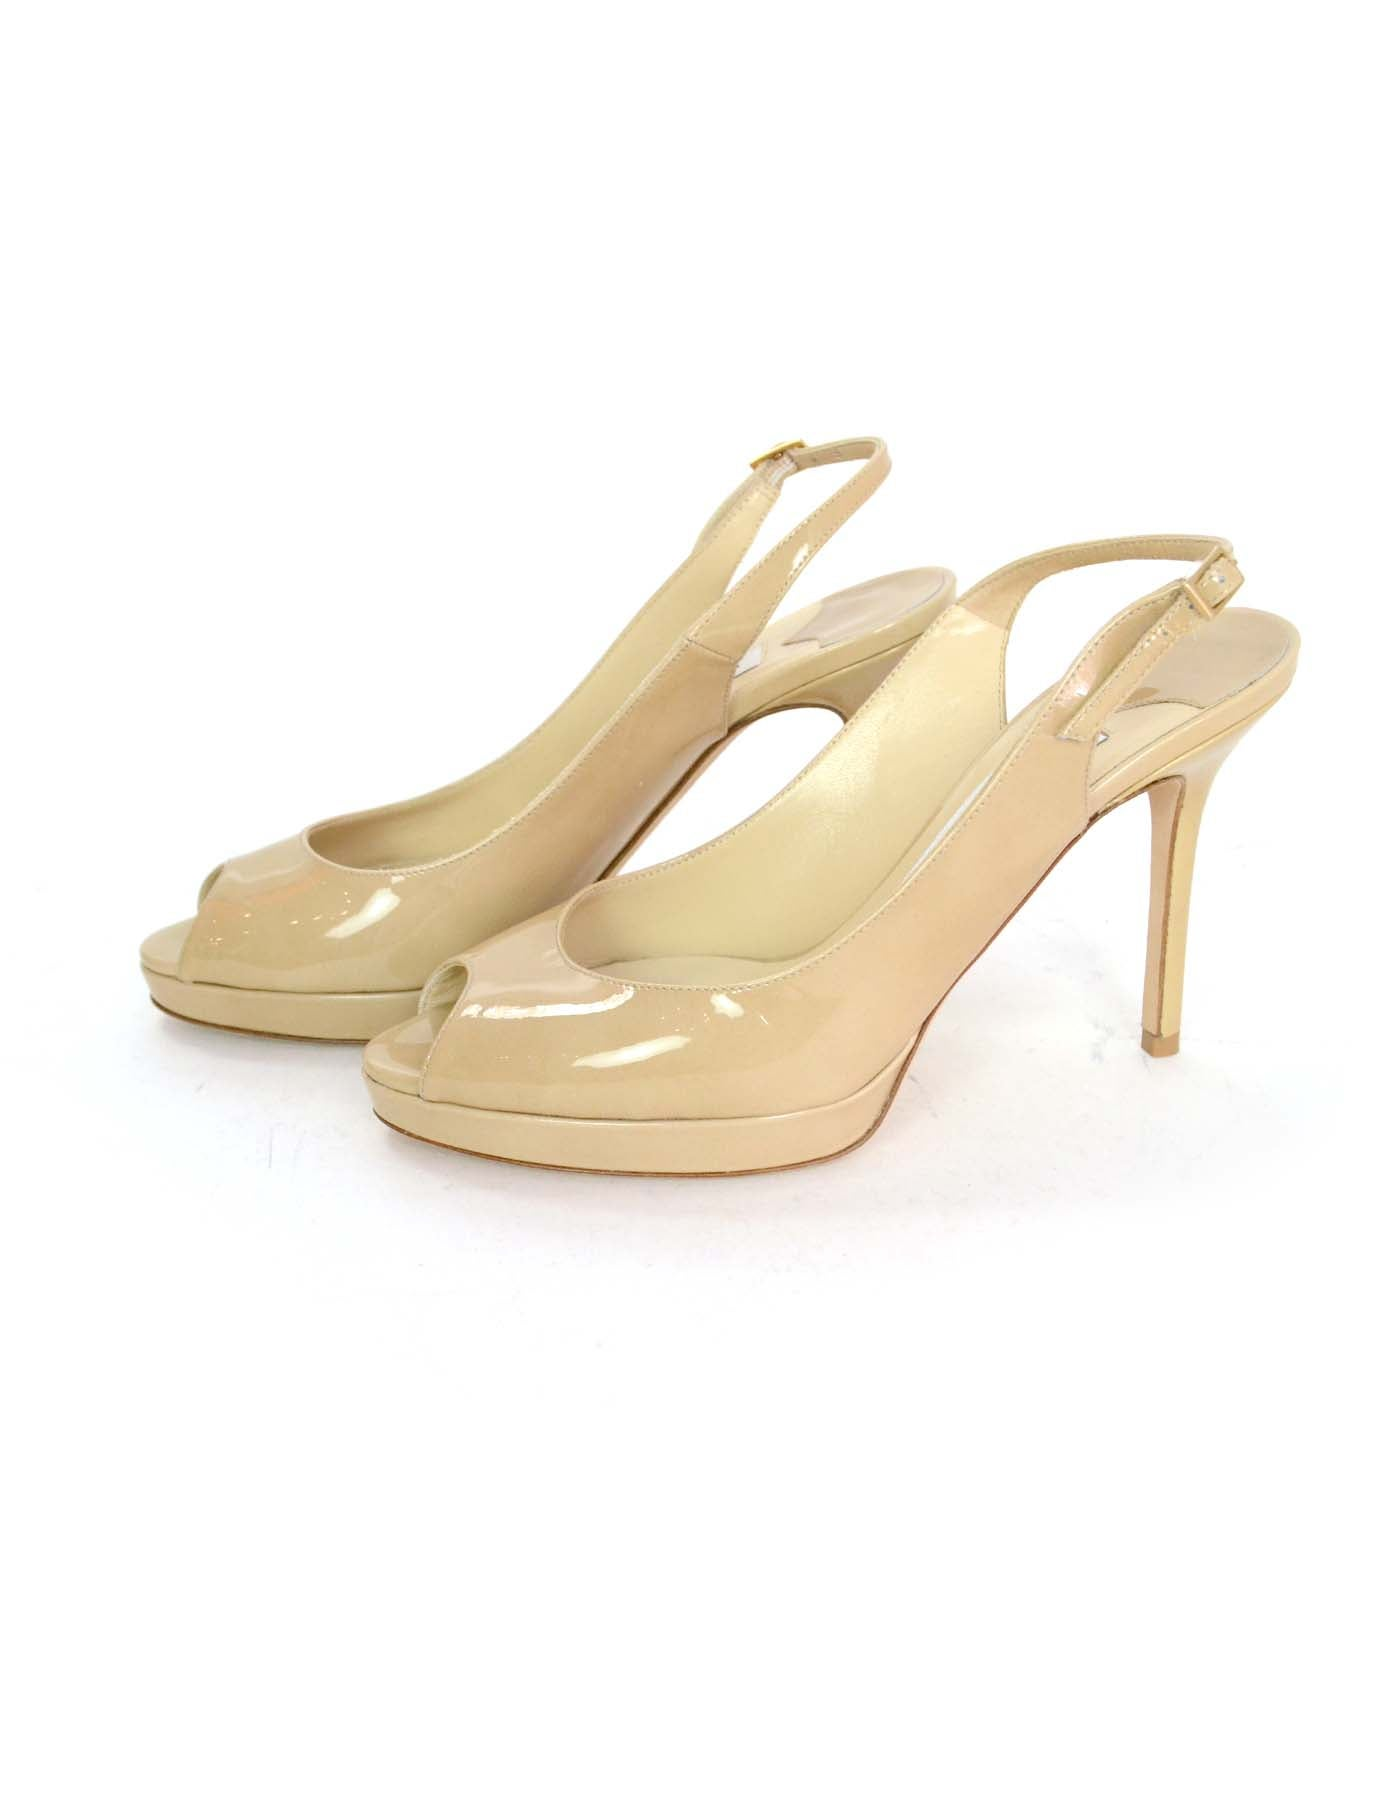 d5c40e05b19 Jimmy Choo Nude Patent Leather Slingback Peep-toe Pumps Sz 38 For Sale at  1stdibs